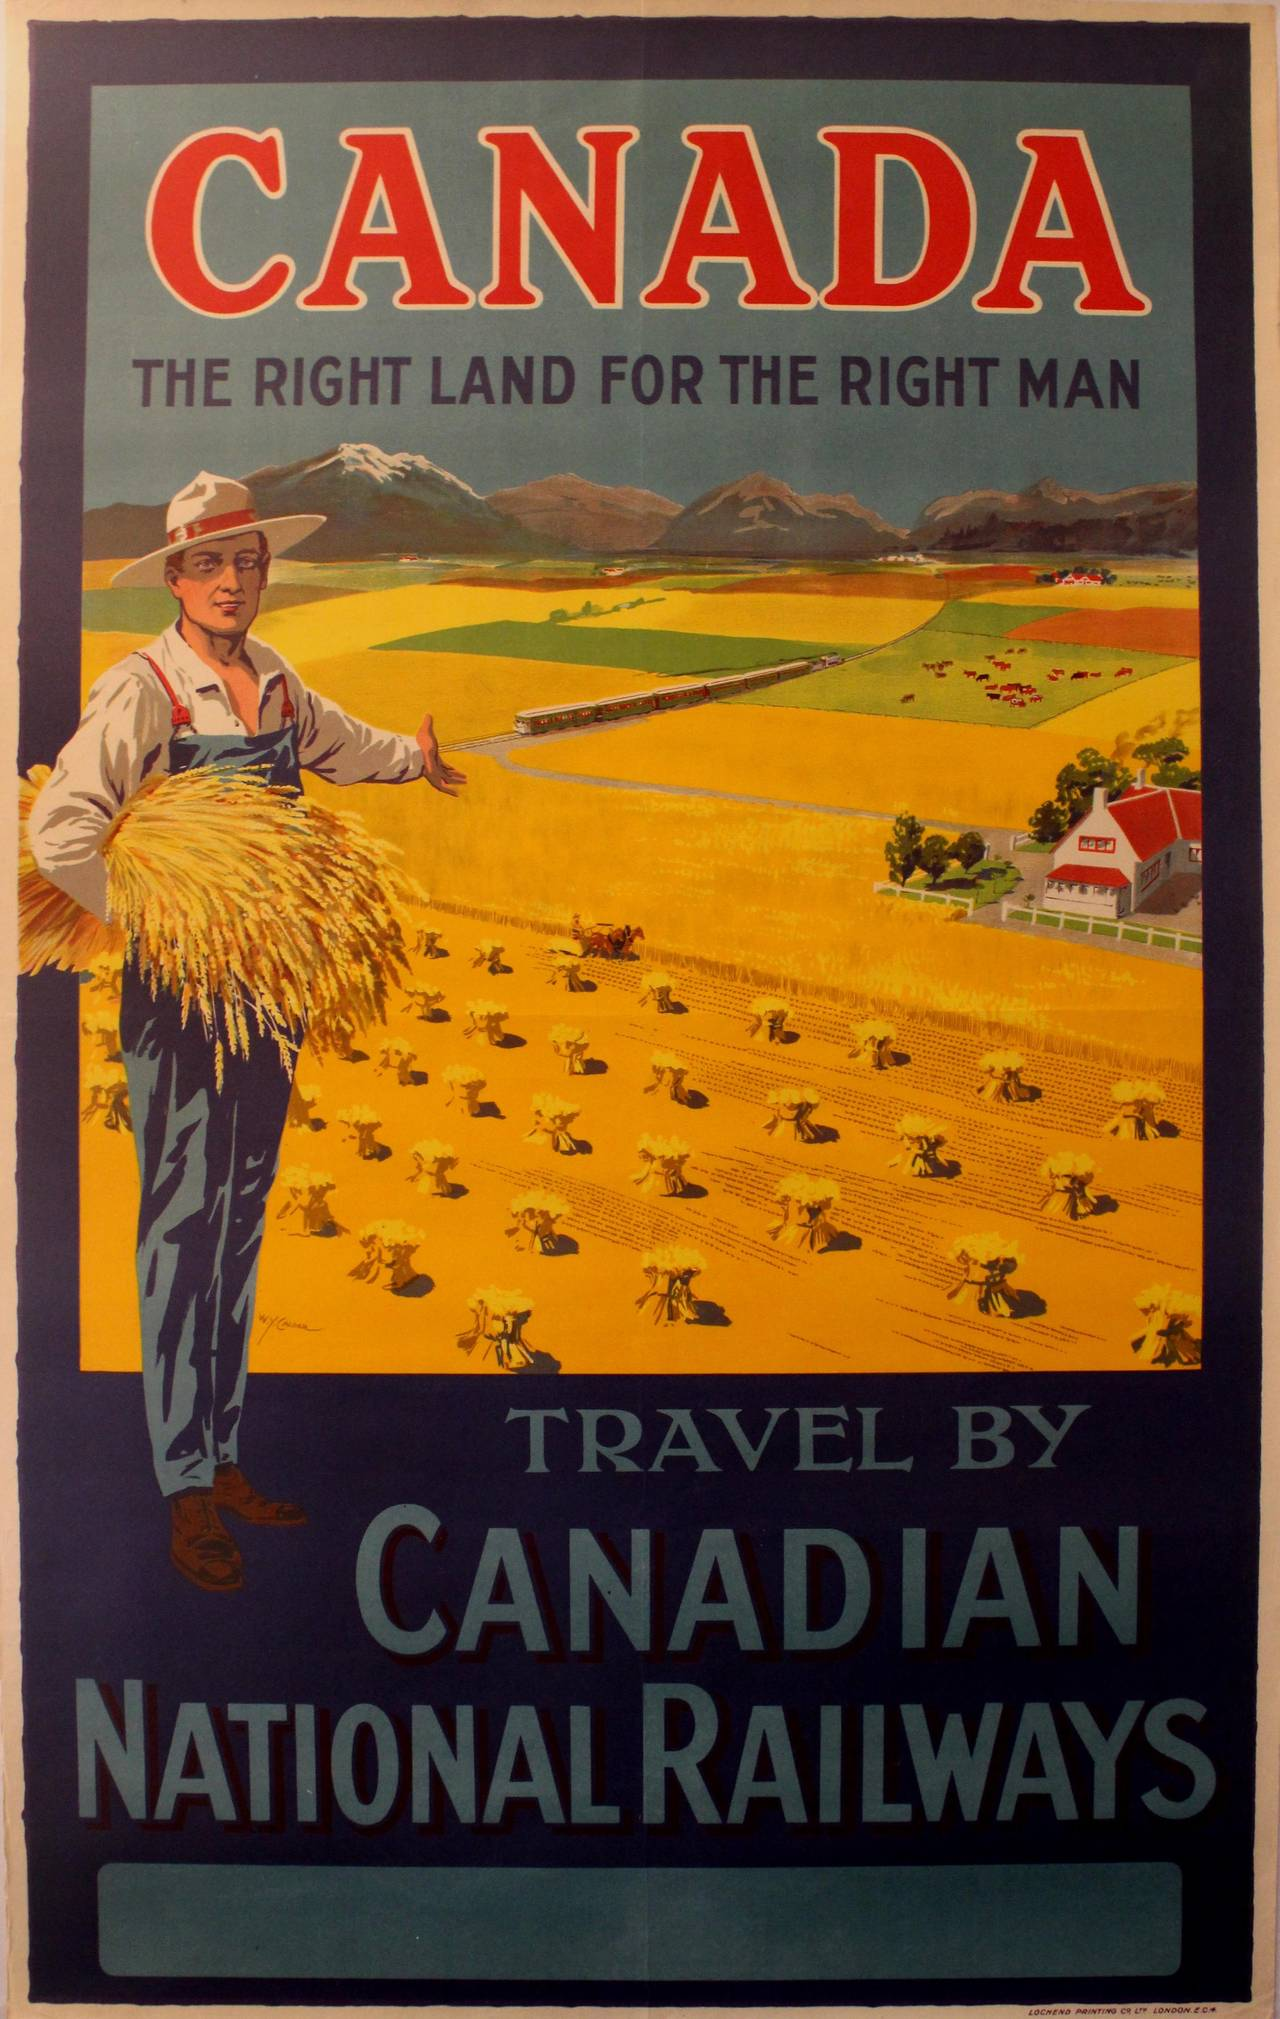 Original Vintage Railway Travel Poster Canada The Right Land For The Right Man For Sale at 1stdibs